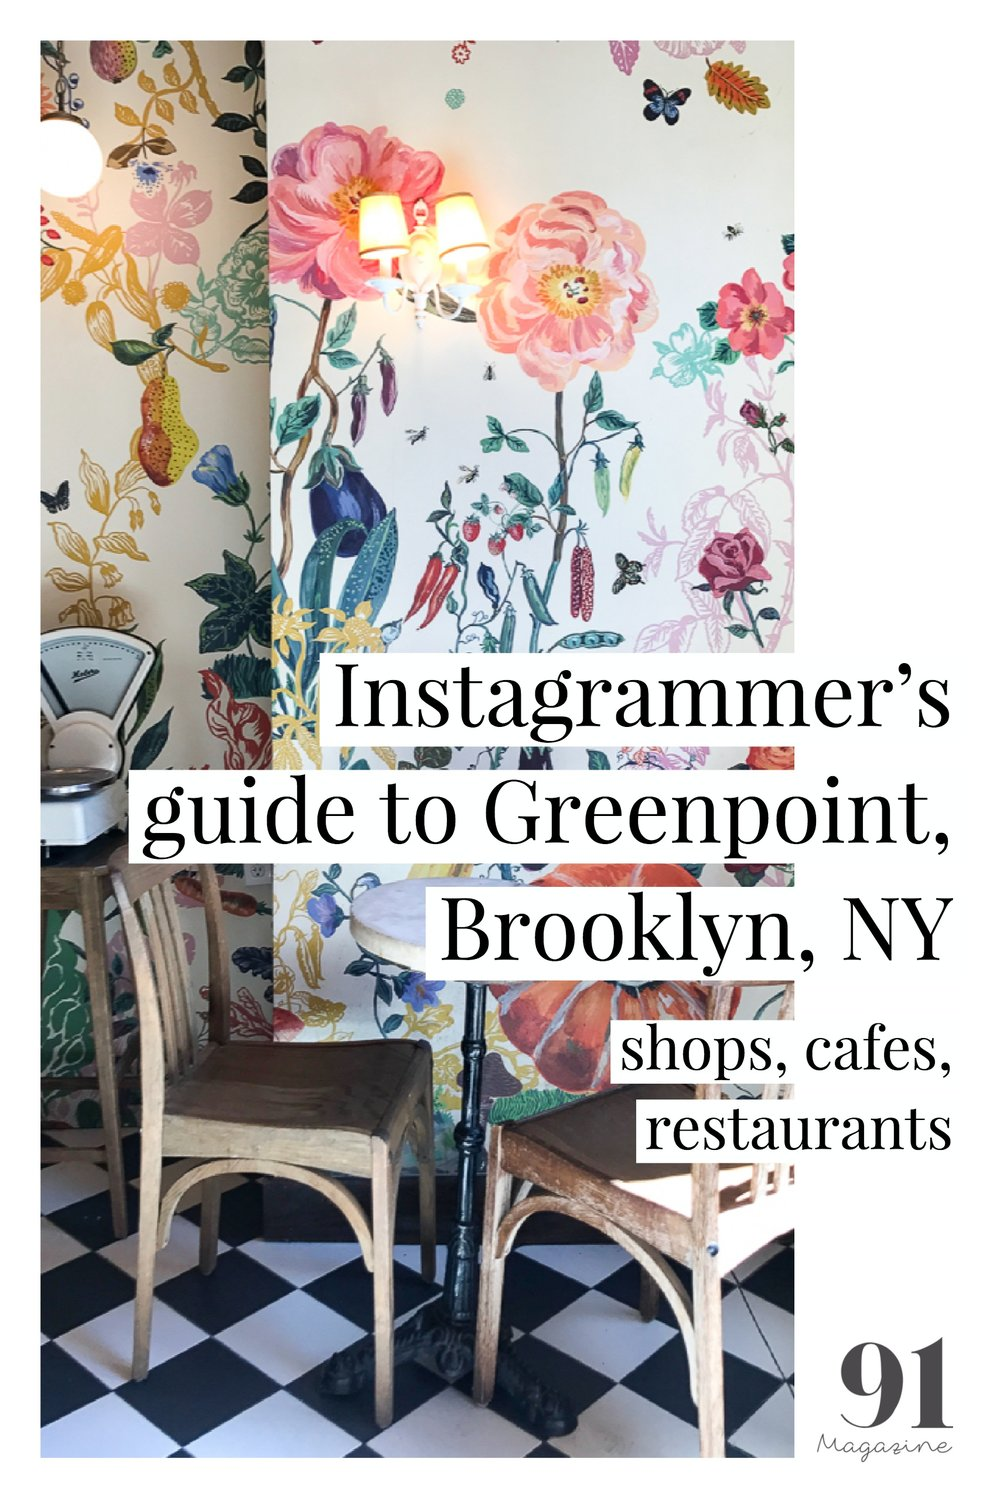 Instagrammer's guide to Greenpoint, Brooklyn, NY